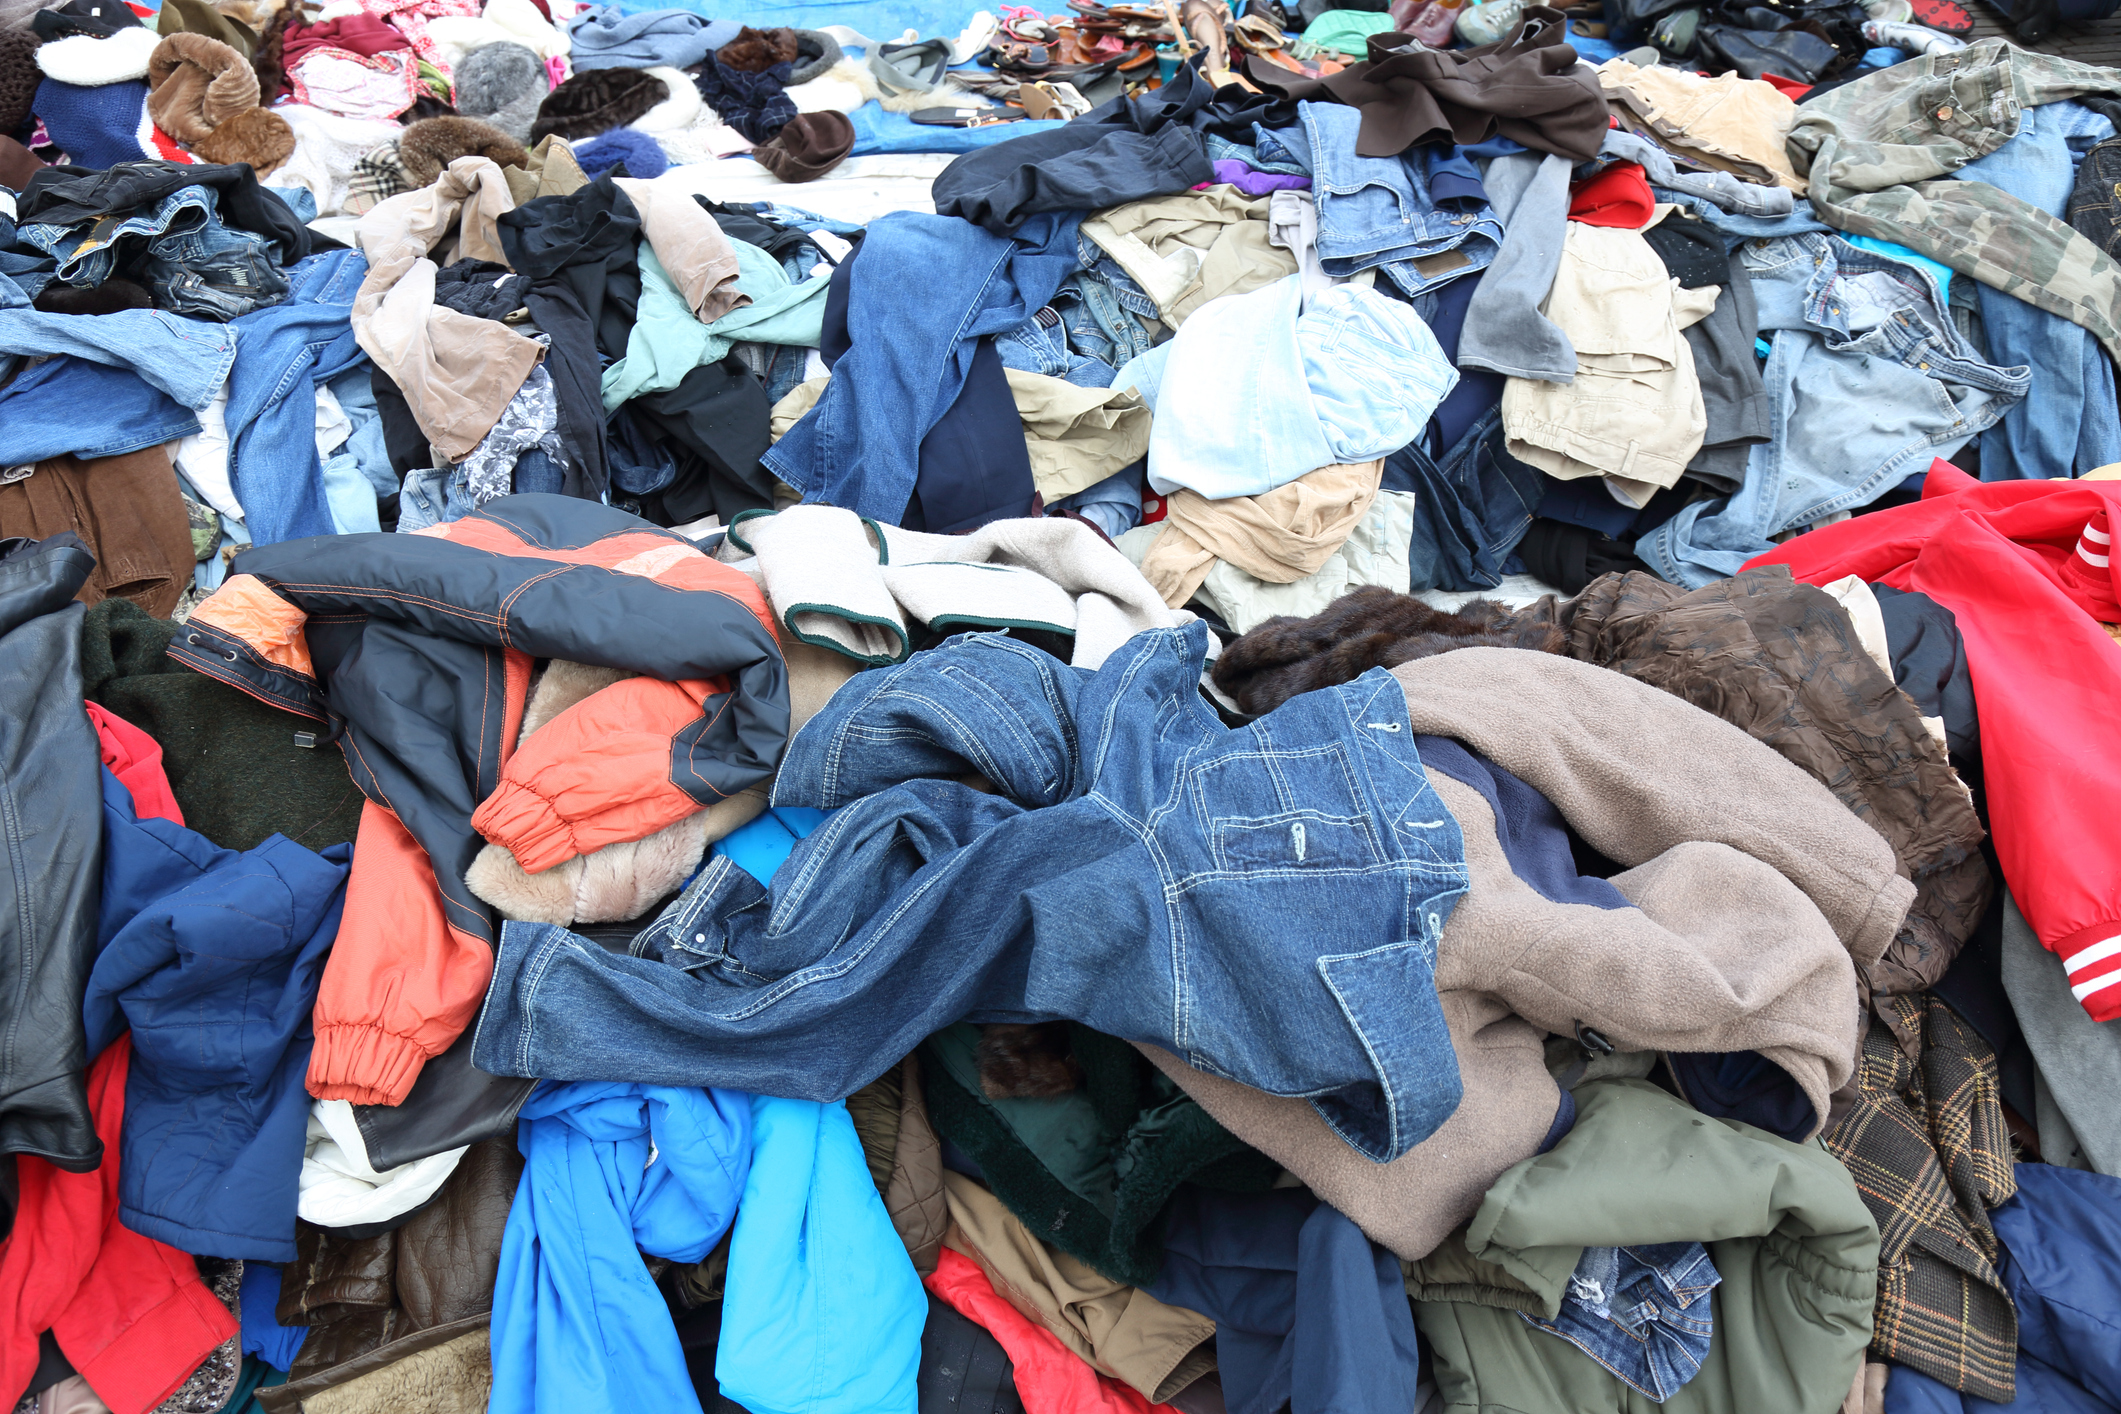 Textile and leather waste which is not segregated at source for recycling or reuse will be sent to the incineration plant. The incinerated waste is then transported to Semakau Landfill.